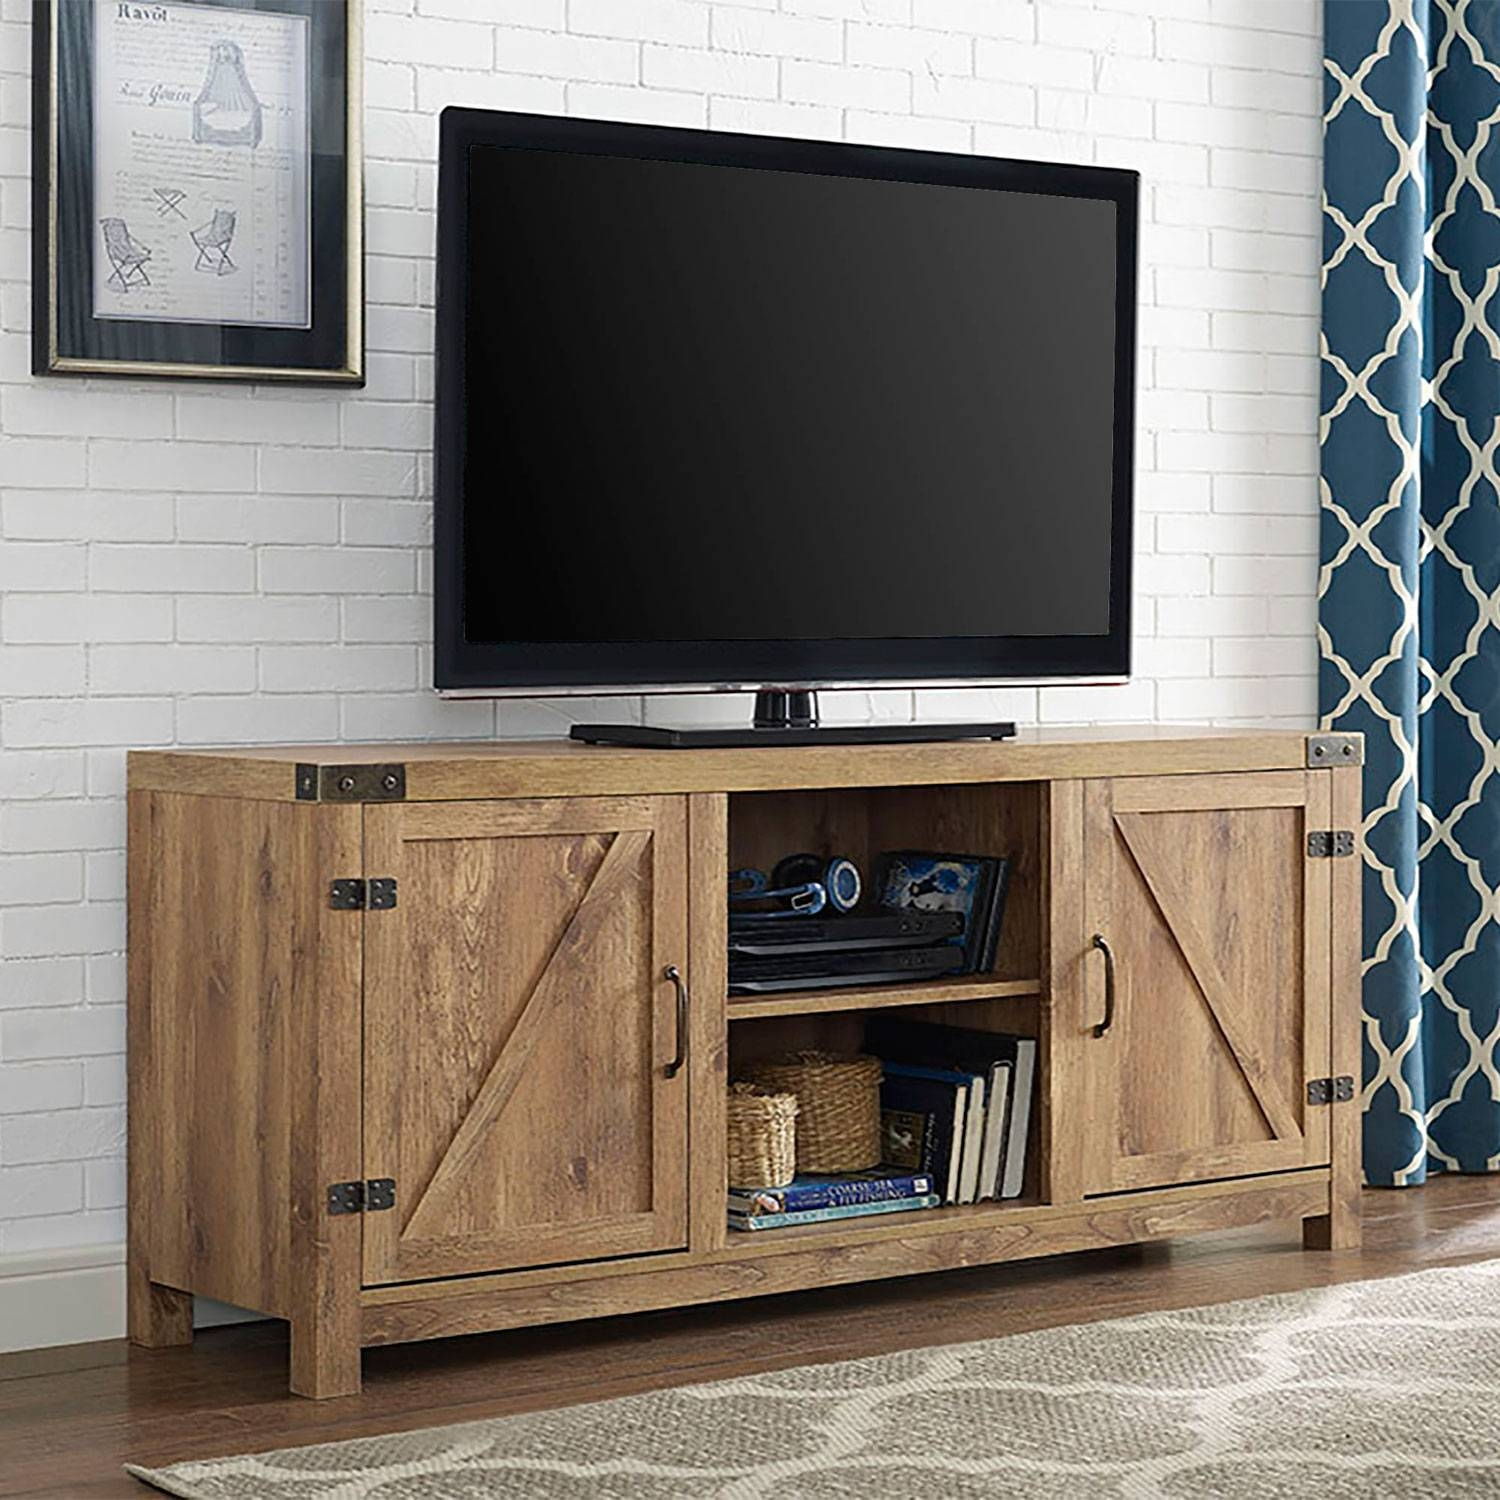 Tv Stands & Cabinets On Sale | Bellacor for 24 Inch Corner Tv Stands (Image 13 of 15)